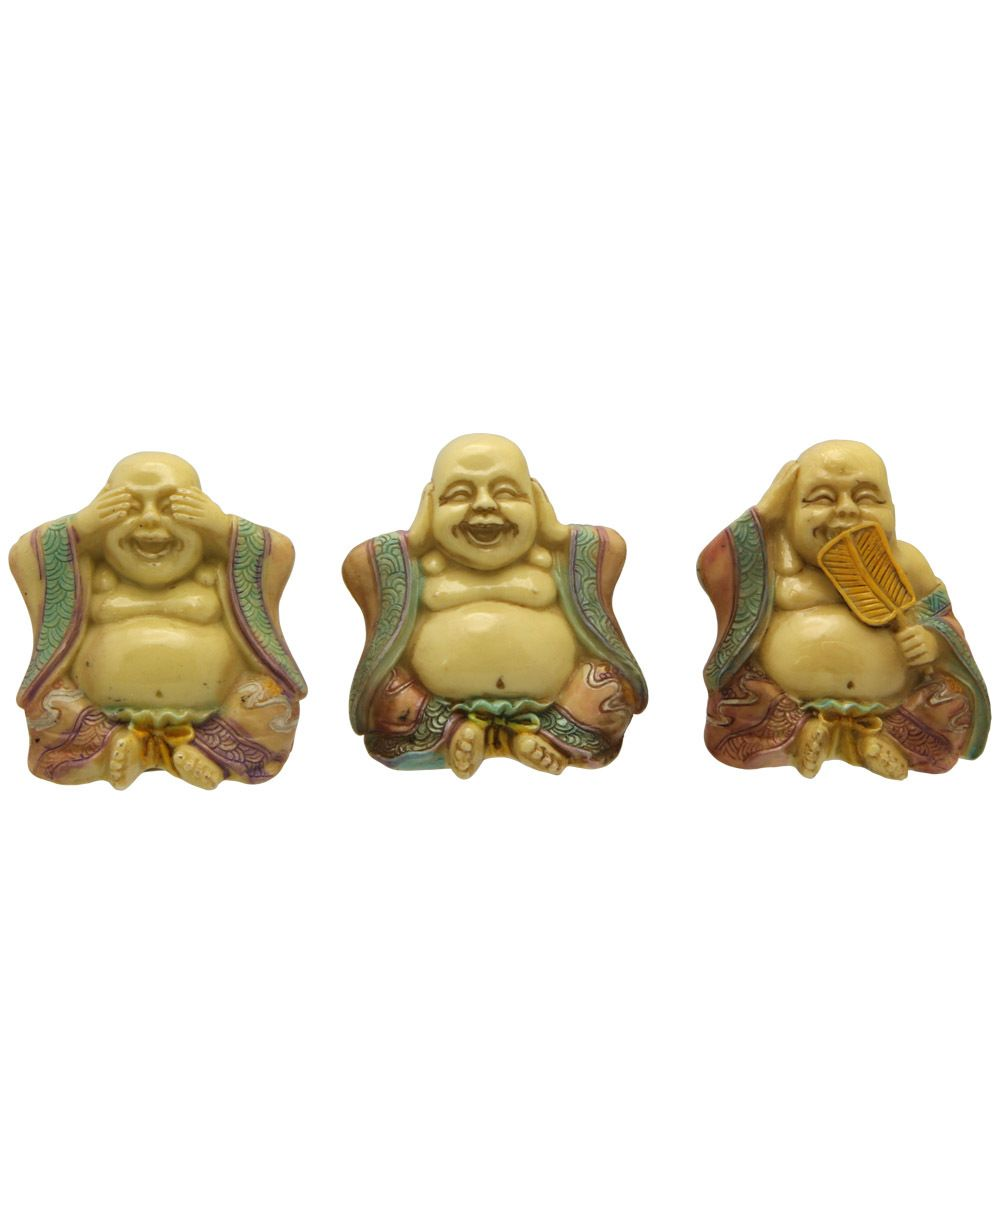 Set of 3 small happy buddha statues see no evil hear no evil say happy buddha likeness is symbolic of joy mirth and contentment and it is said that rubbing the head or belly of a happy buddha statue brings good luck and biocorpaavc Choice Image